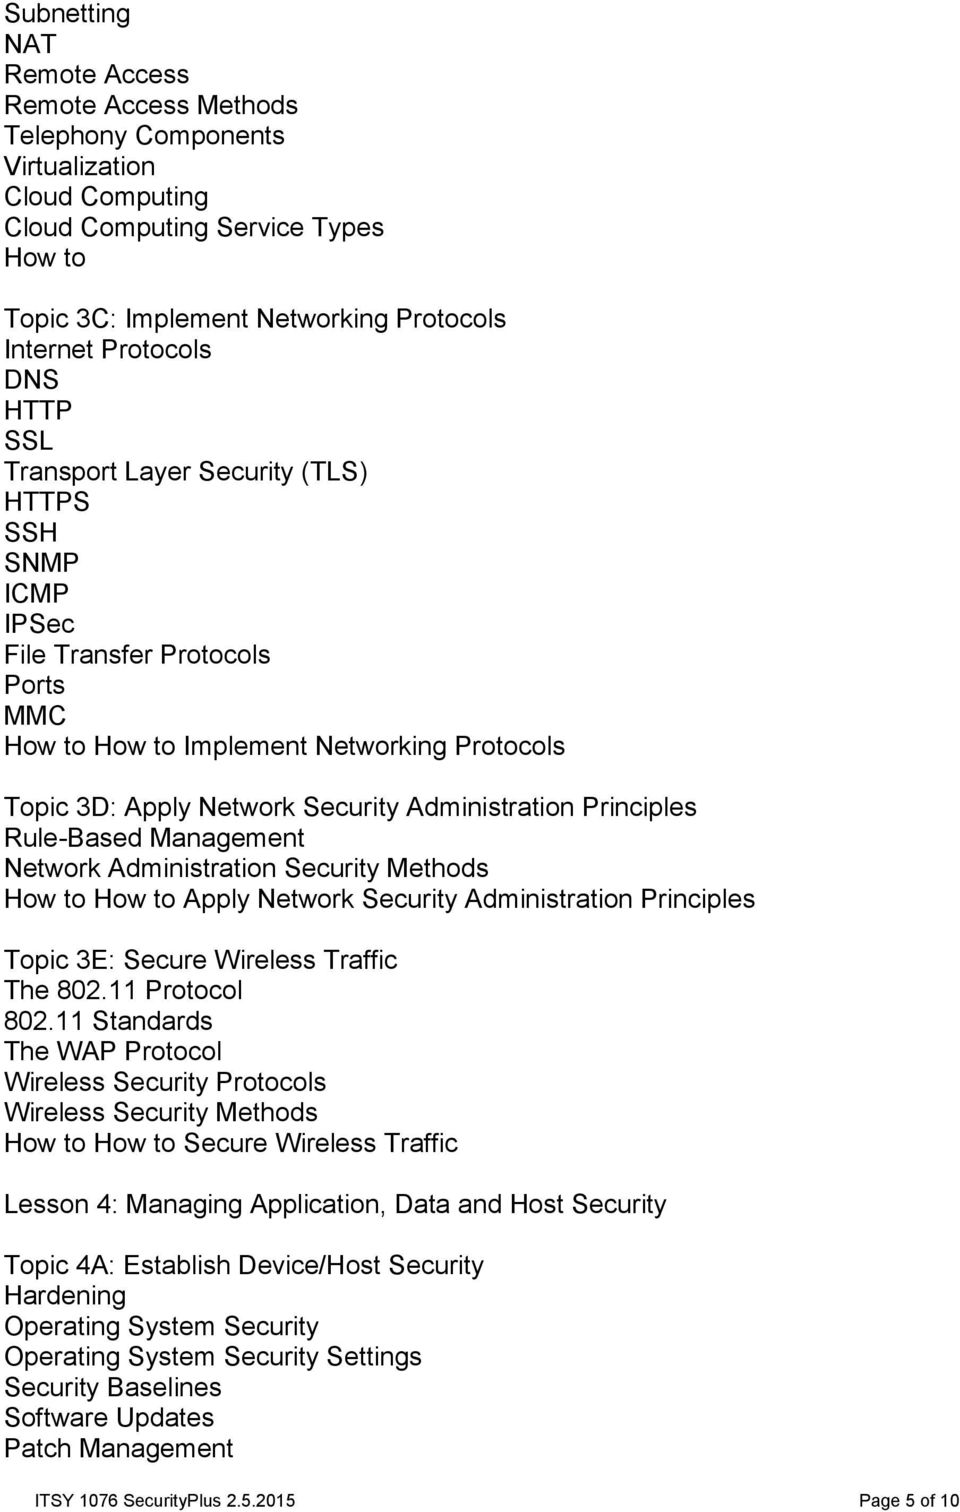 Rule-Based Management Network Administration Security Methods Apply Network Security Administration Principles Topic 3E: Secure Wireless Traffic The 802.11 Protocol 802.